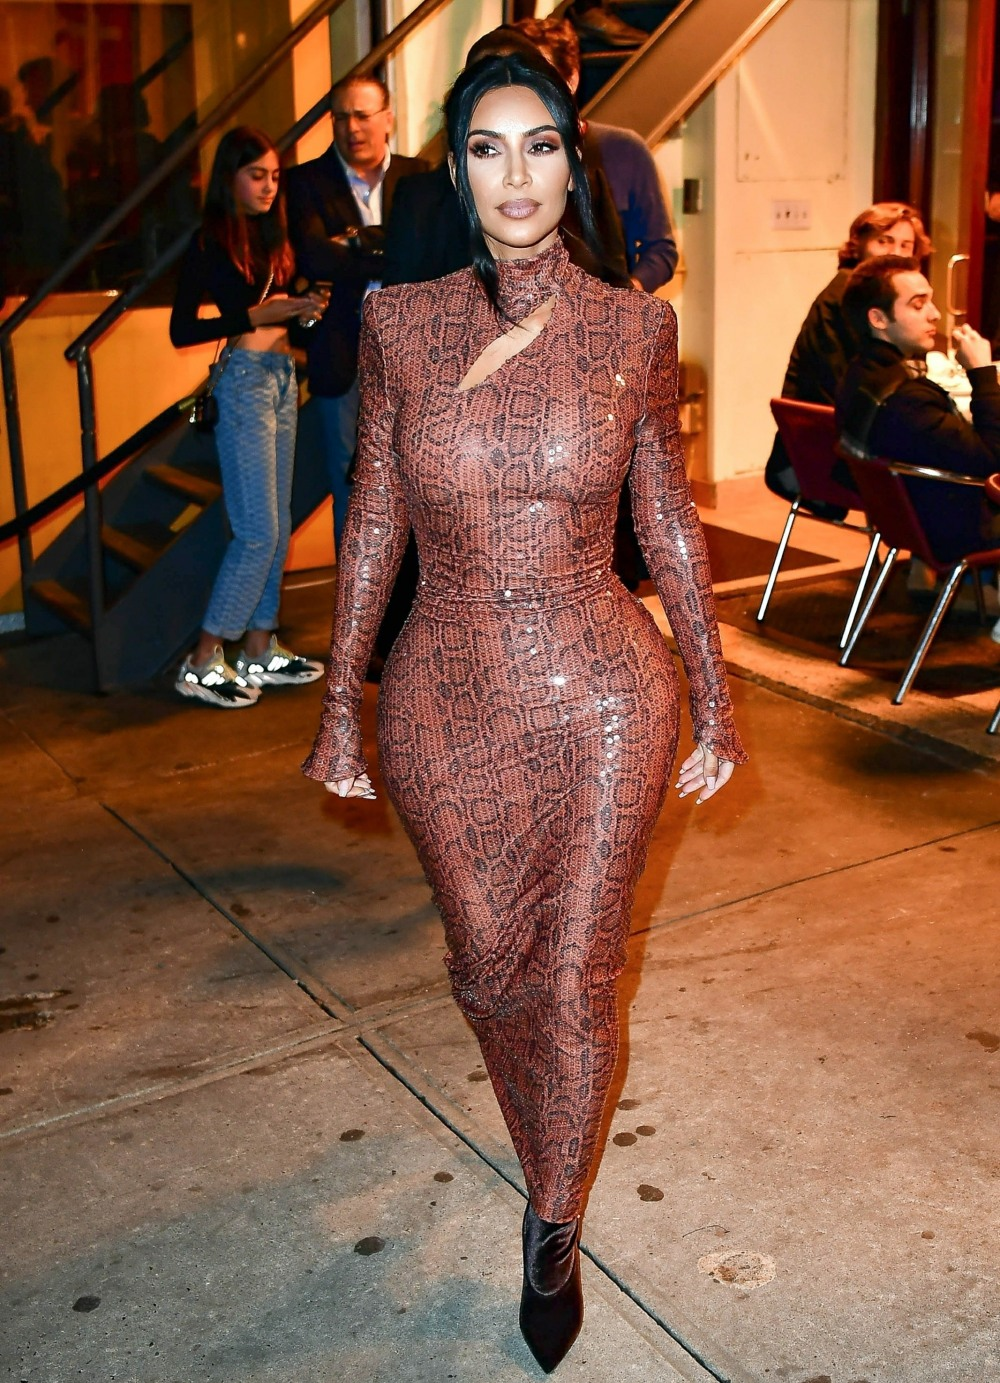 Kim Kardashian attends a dinner party at Cipriani wearing a Thierry Mugler dress